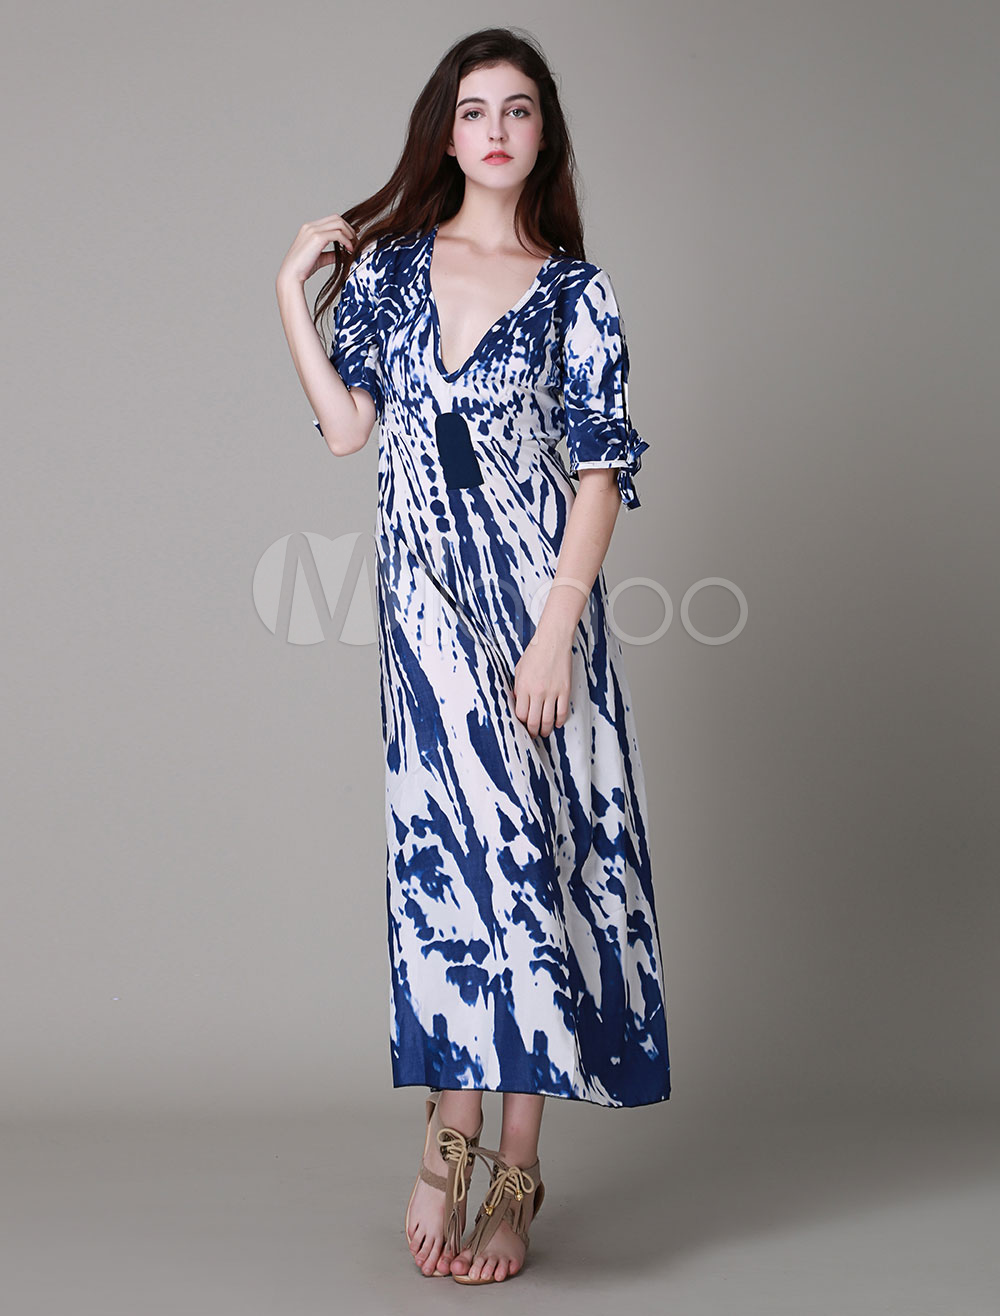 Oversized Printed Acetate Maxi Dress for Woman